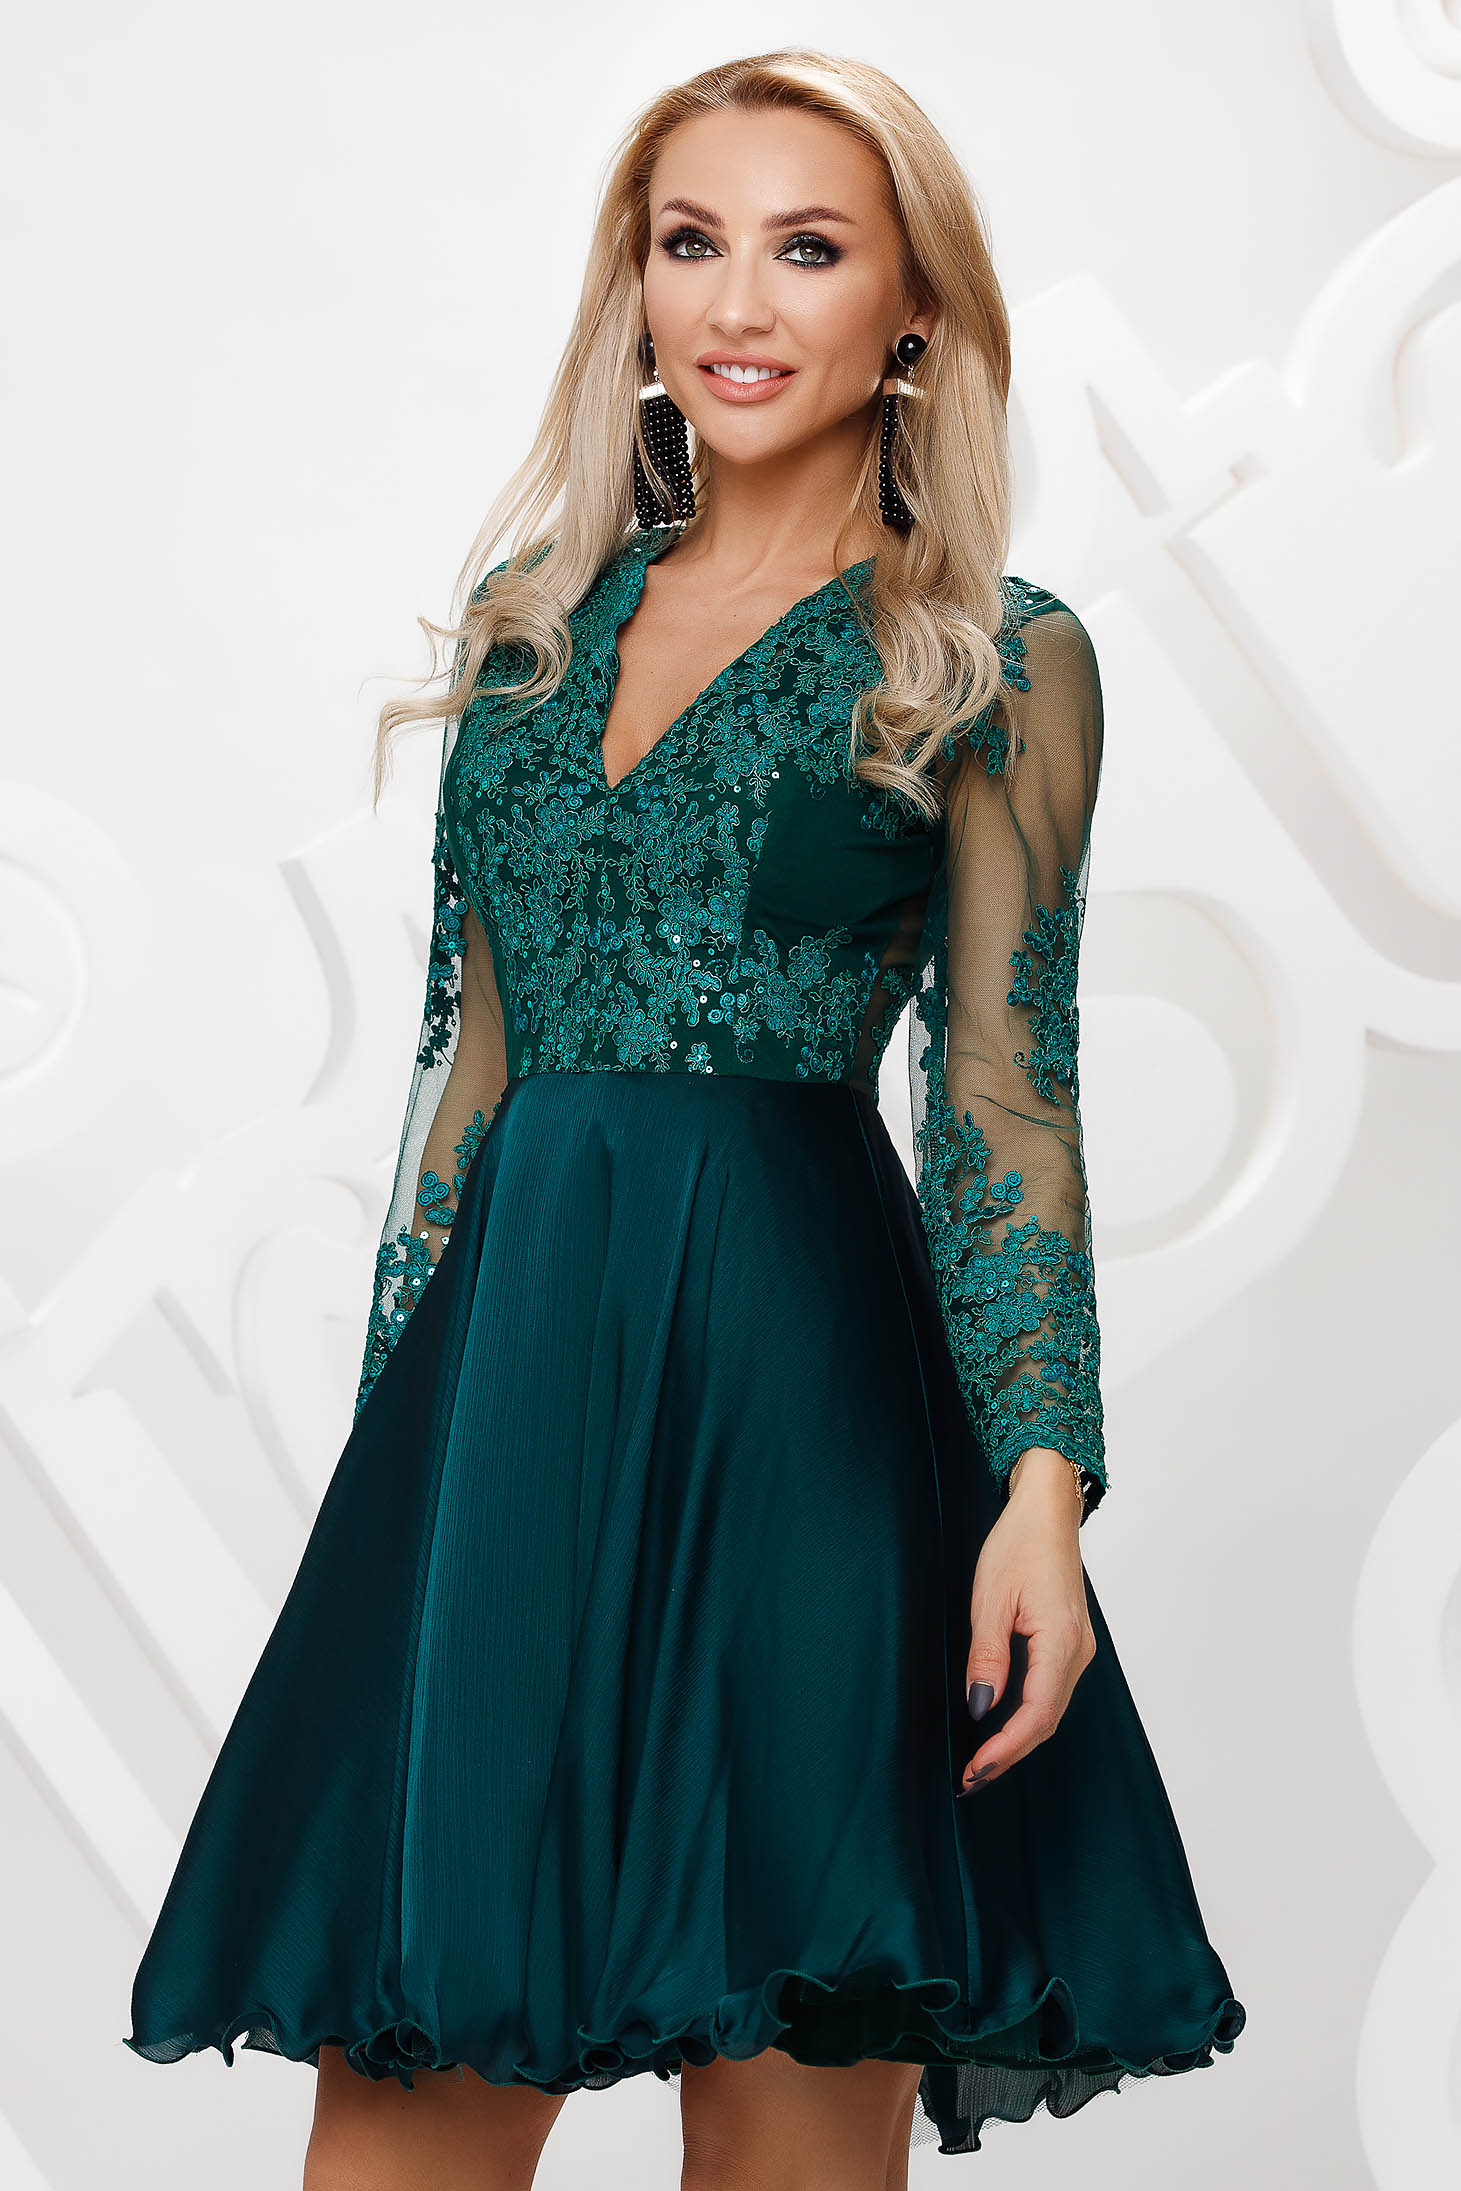 Darkgreen dress from tulle cloche occasional lace and sequins details